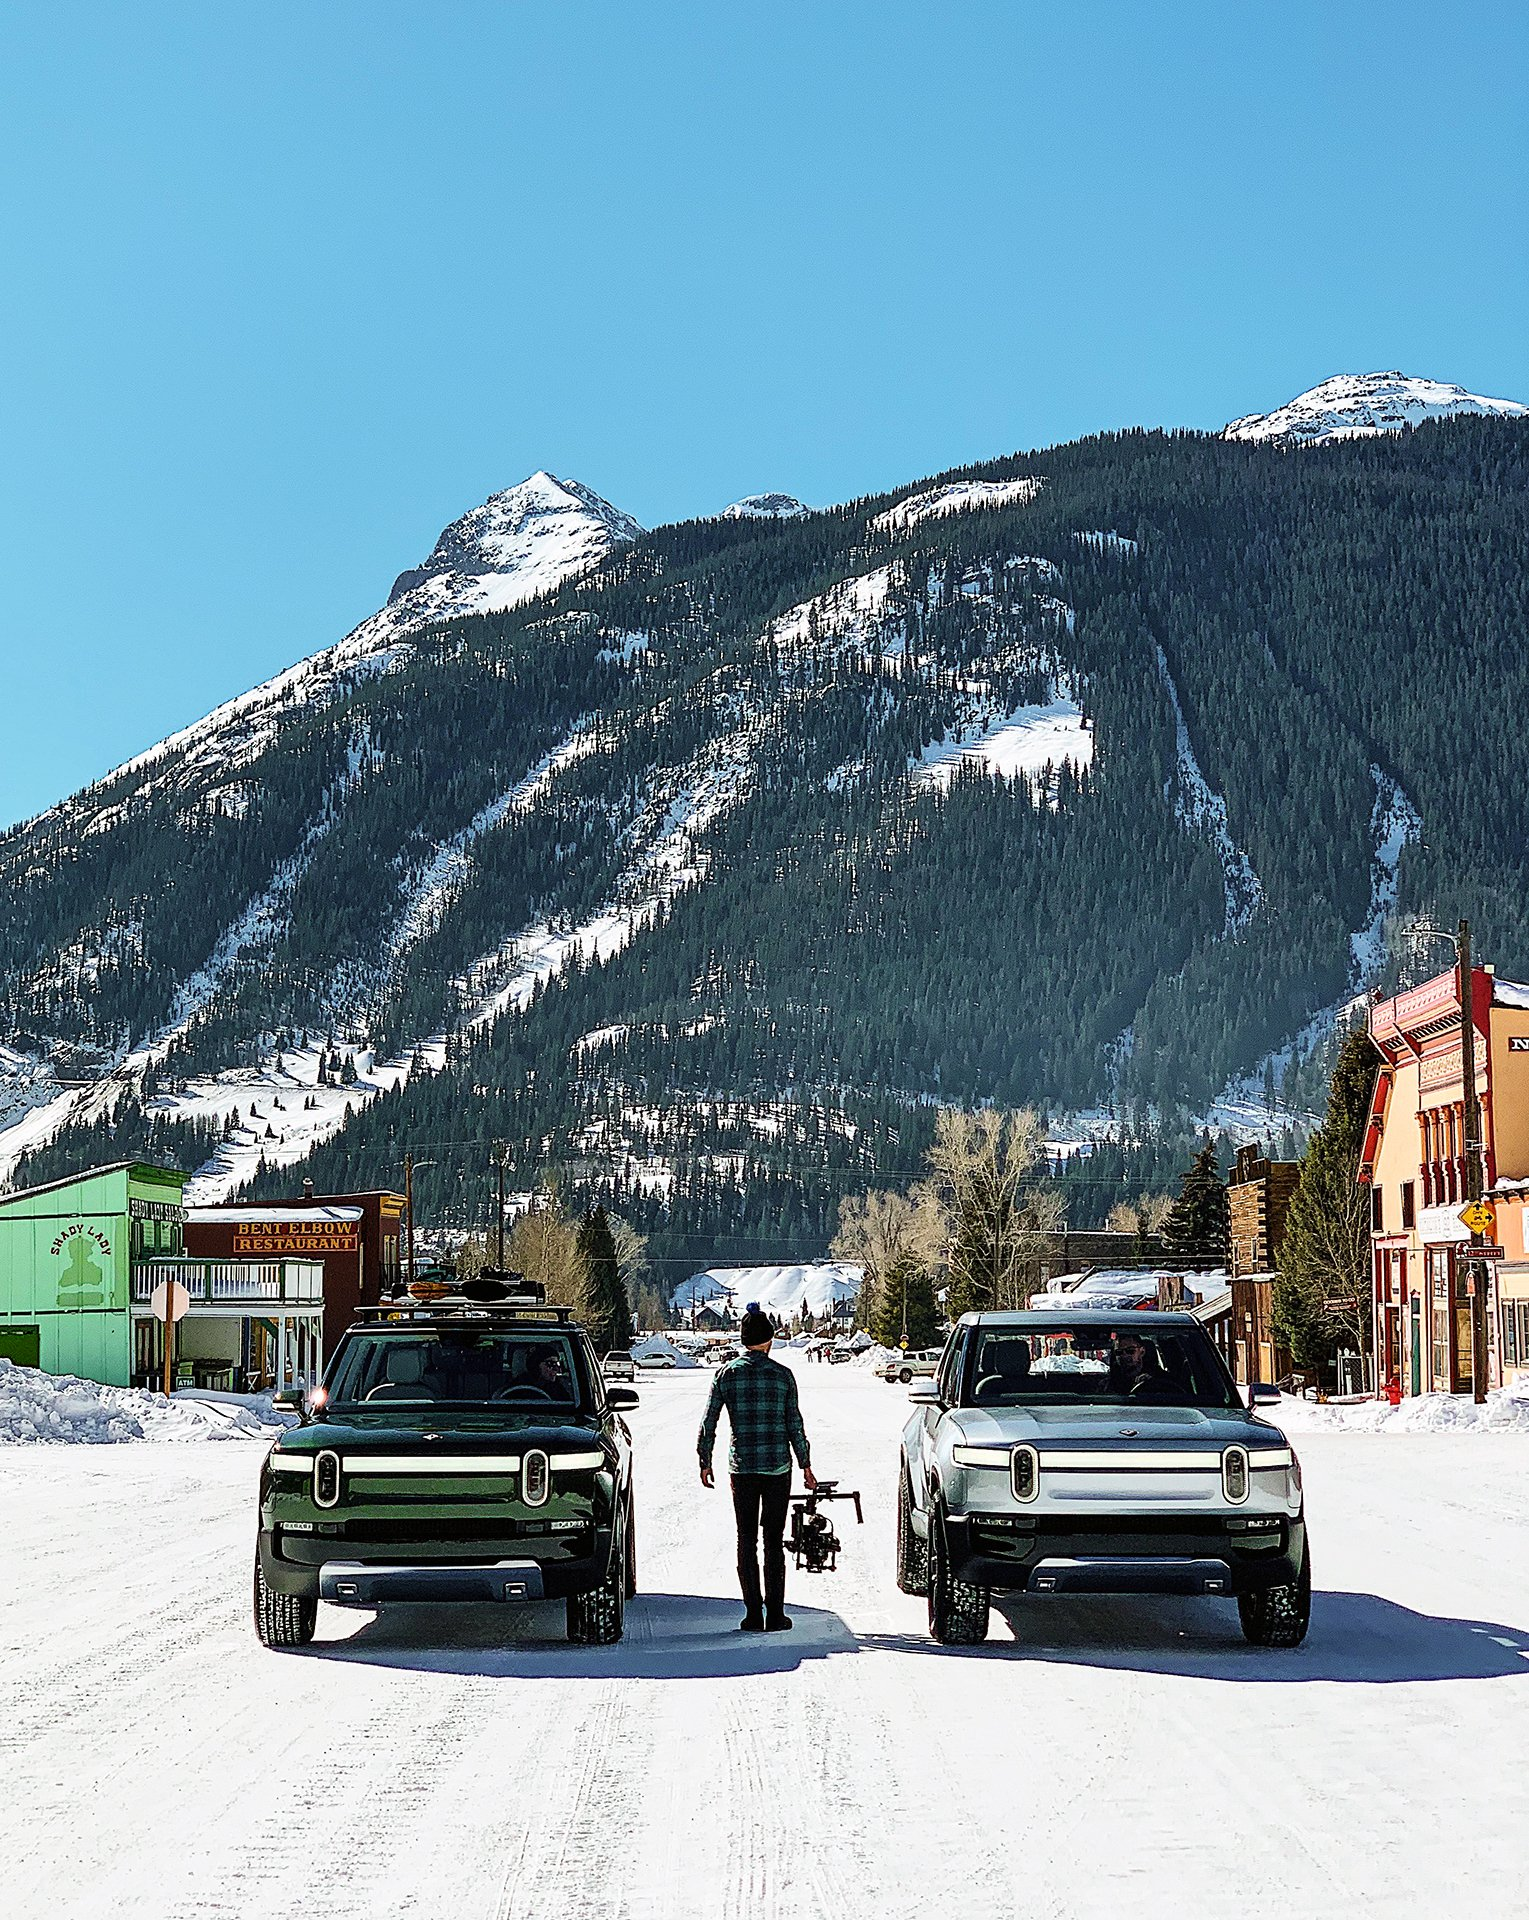 Rivian R1S and R1T on an electric adventure in the snowy mountains